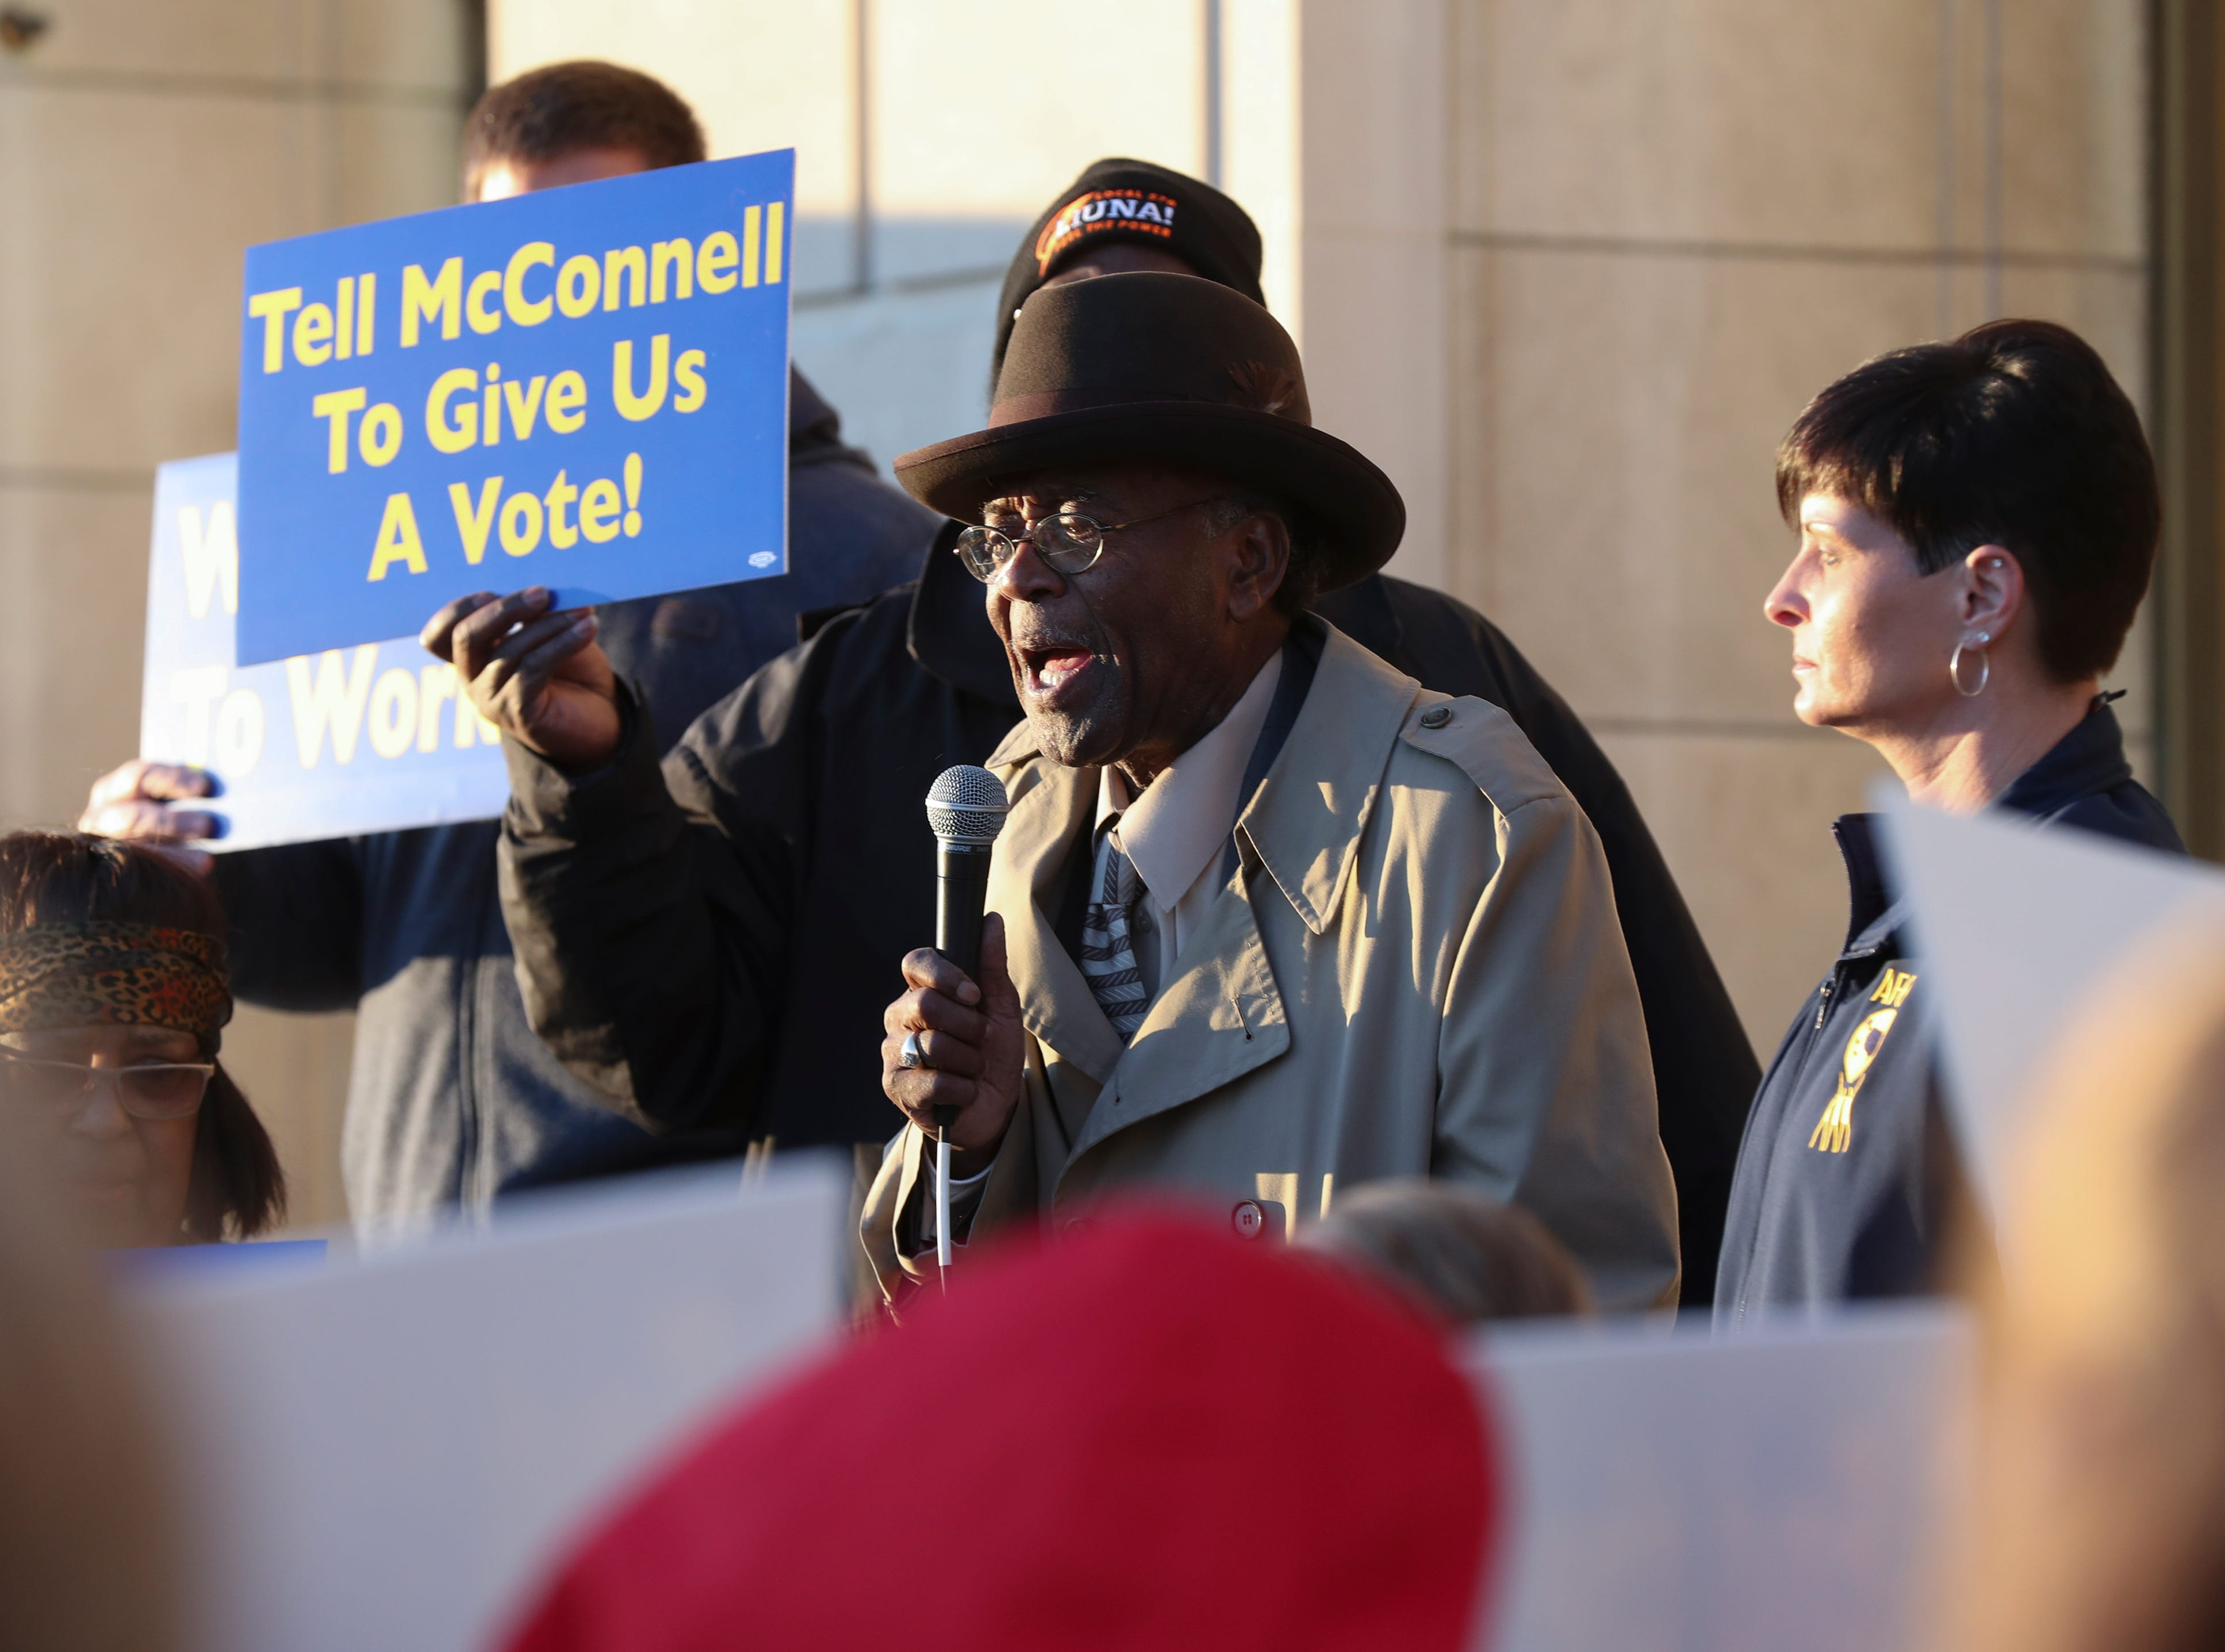 The Rev. Charles Elliott spoke to a group of protesters, mostly comprised of Jeffersonville Census Bureau employees, who were rallying against the government shutdown.